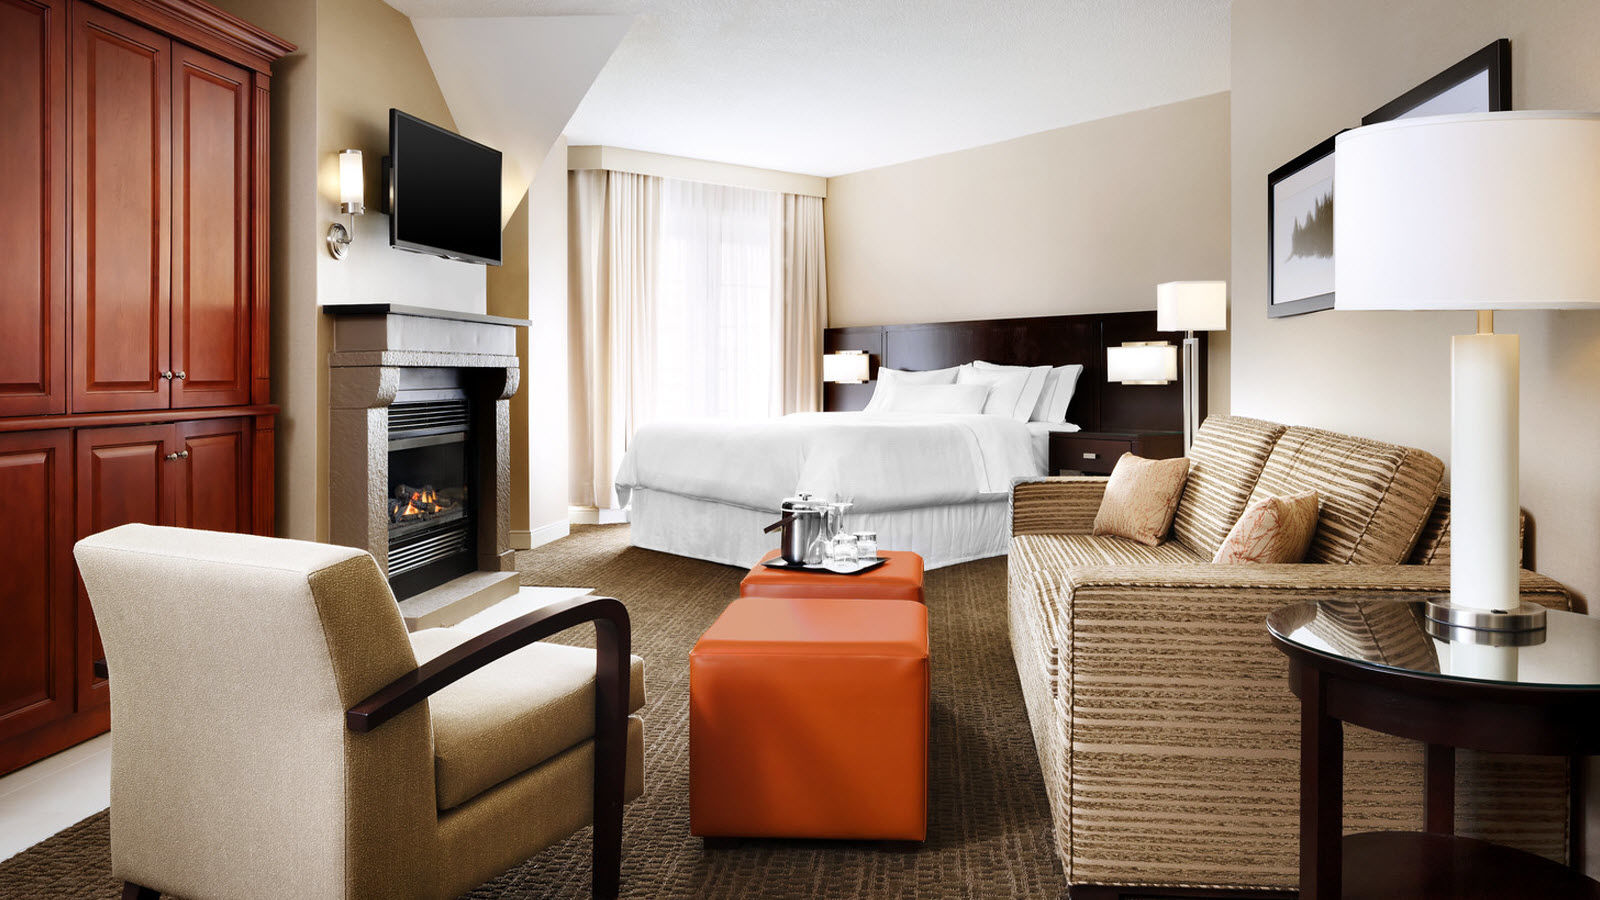 Deluxe Guest Room | Le Westin Resort & Spa, Tremblant, Quebec